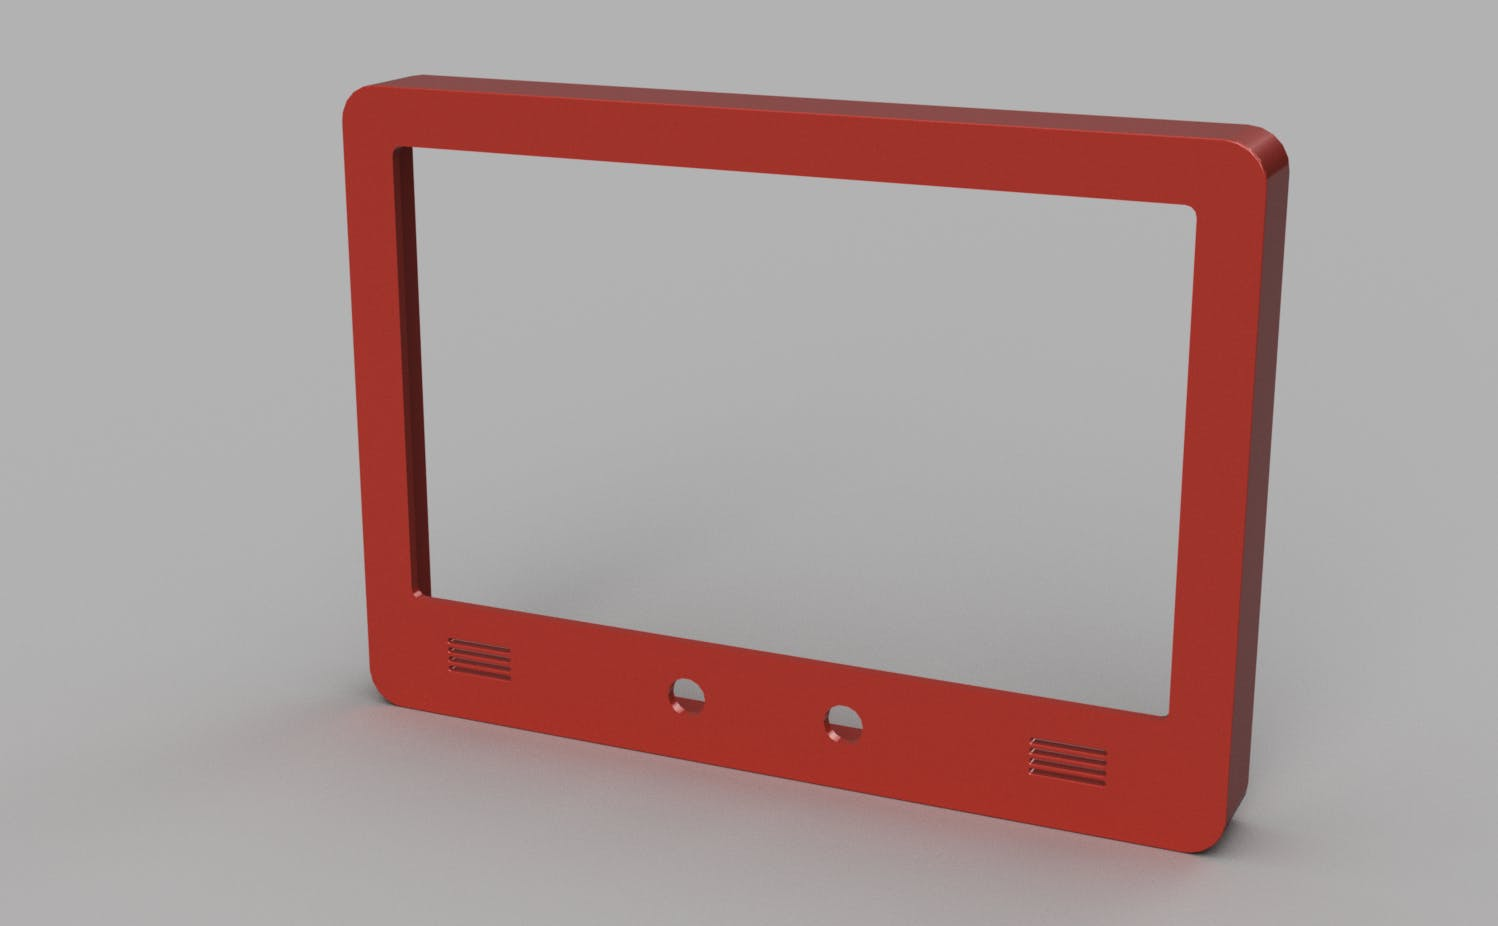 First study of a display enclosure IP65 classified